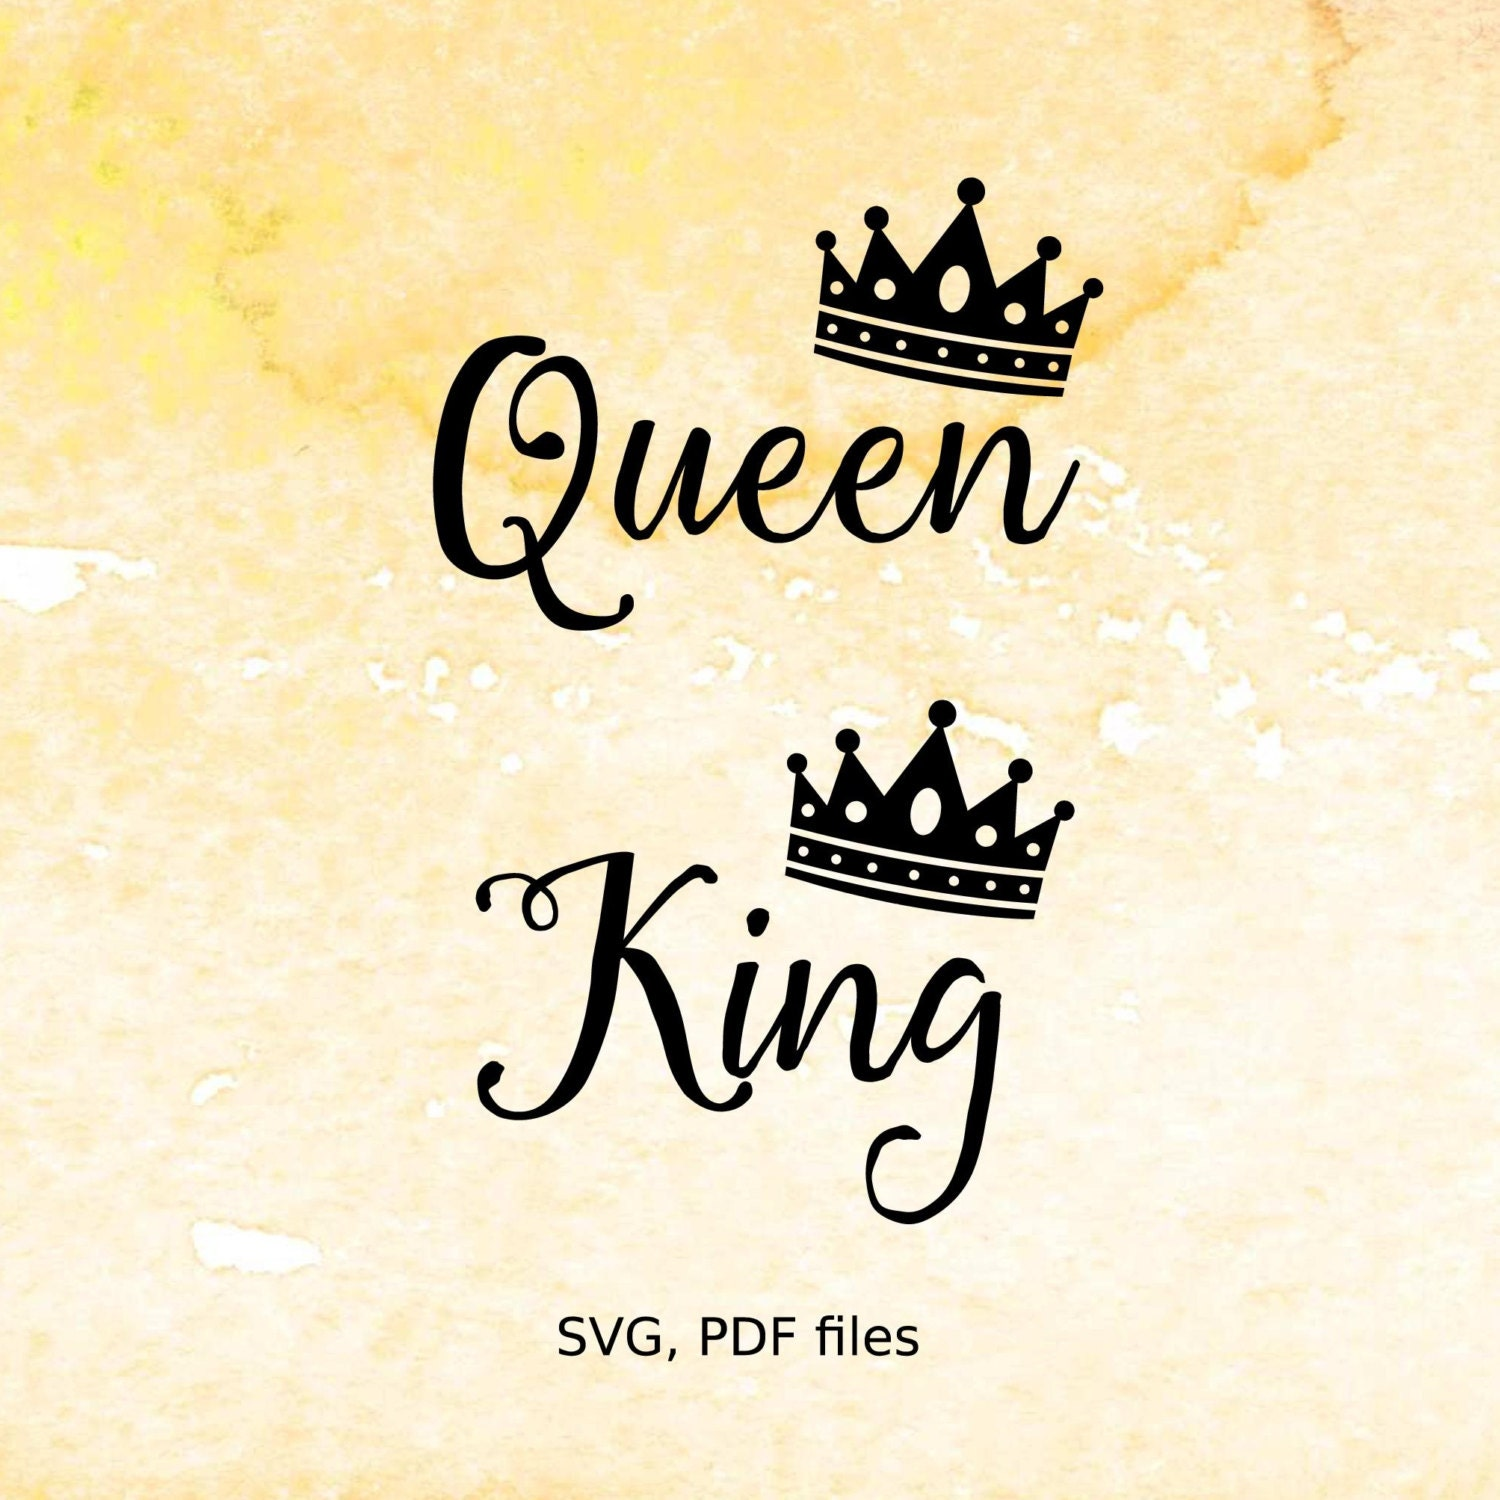 Queen King Svg Files Crown Svg File For Cutting Machines